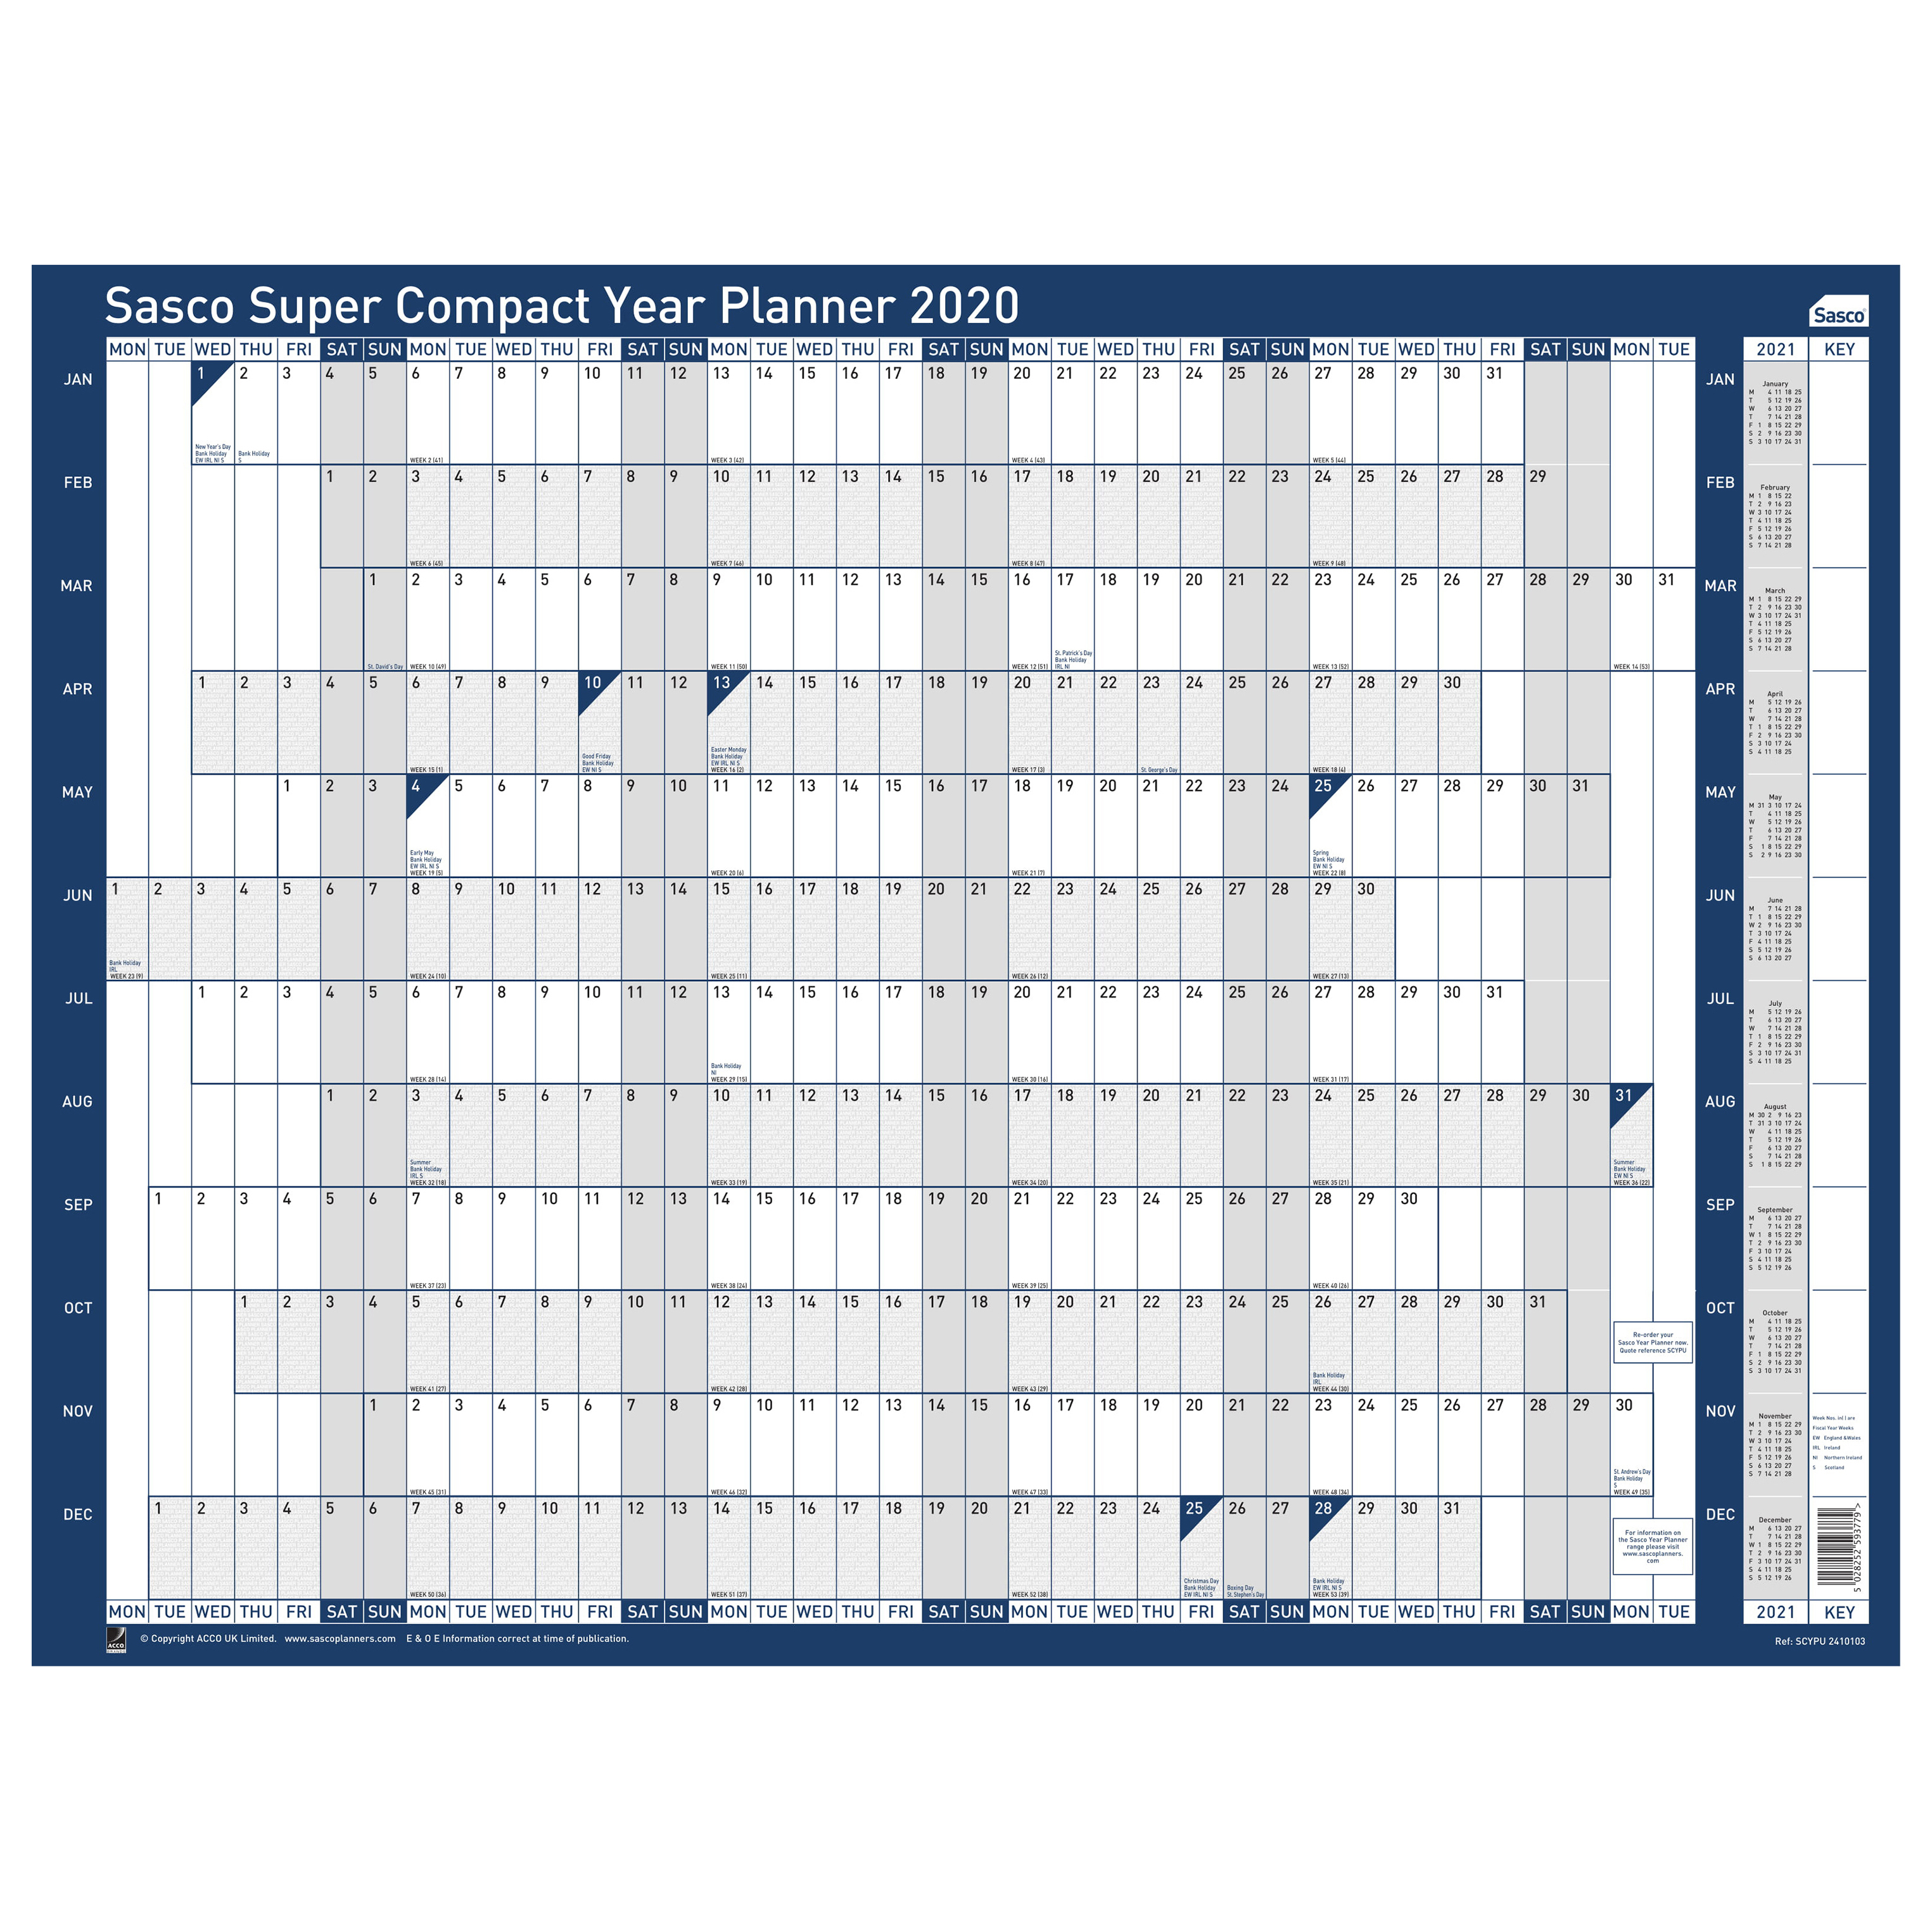 Planners Sasco 2020 Super Compact Year Planner Unmounted 400x285mm Ref 2410103 REDEMPTION Jul-Sep19